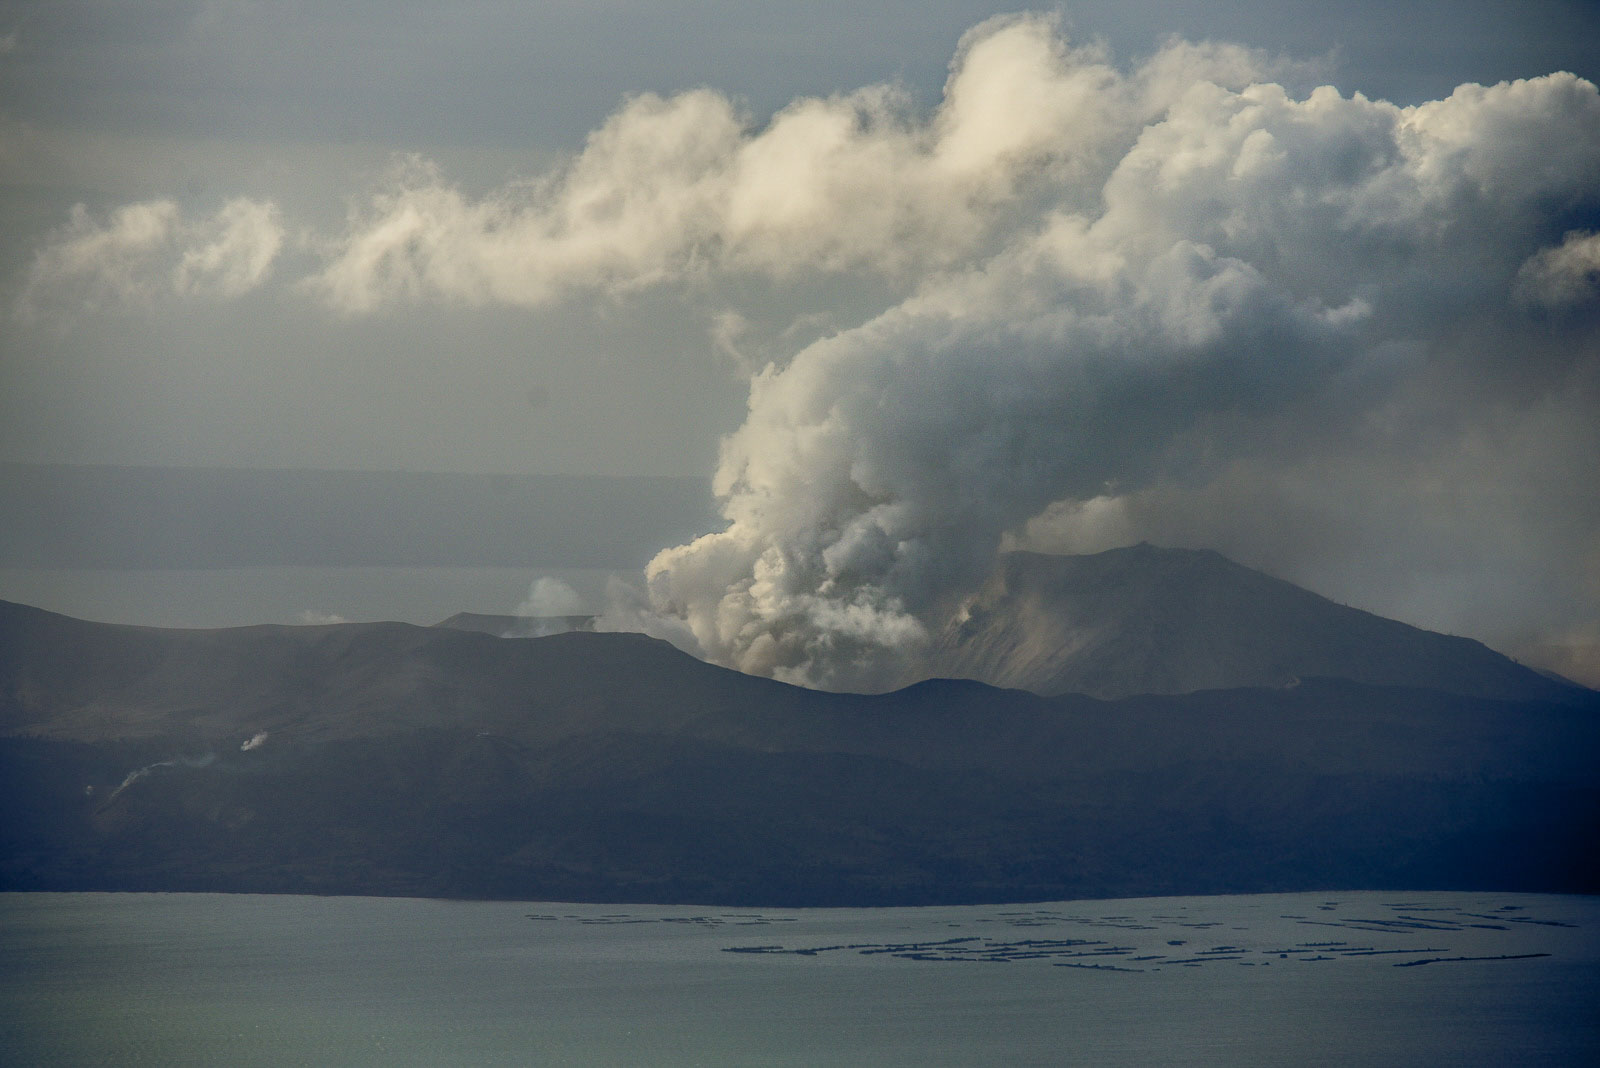 RESTIVE VOLCANO. Taal Volcano spews ash as seen from Talisay, Batangas, on January 15, 2020. Photo by Alecs Ongcal/Rappler